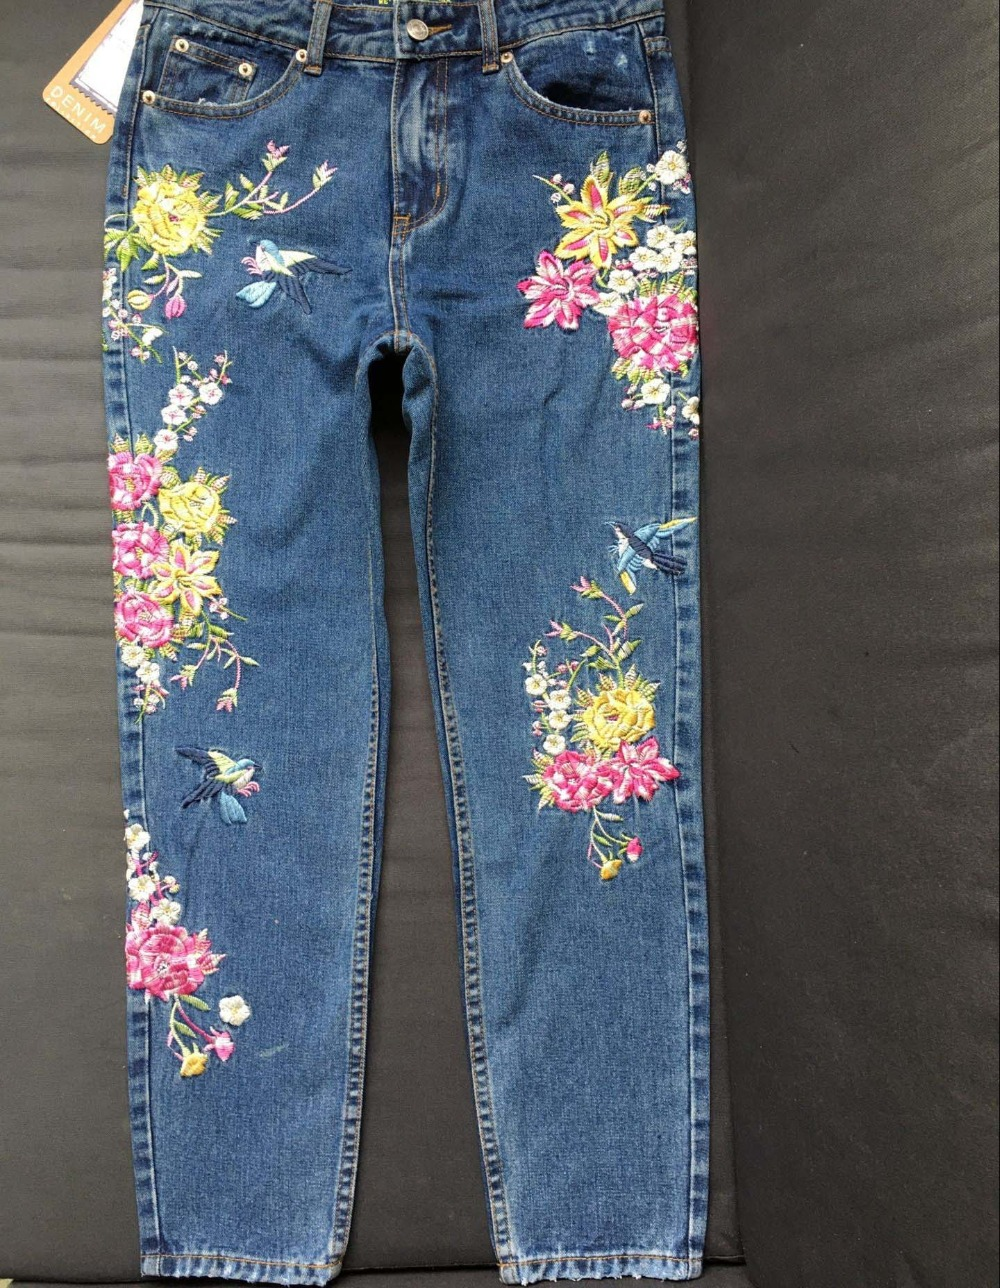 2017 Europe and the United States women's three-dimensional 3D heavy craft bird flowers before and after embroidery high waist Slim straight jeans large code system 46 yards (13)